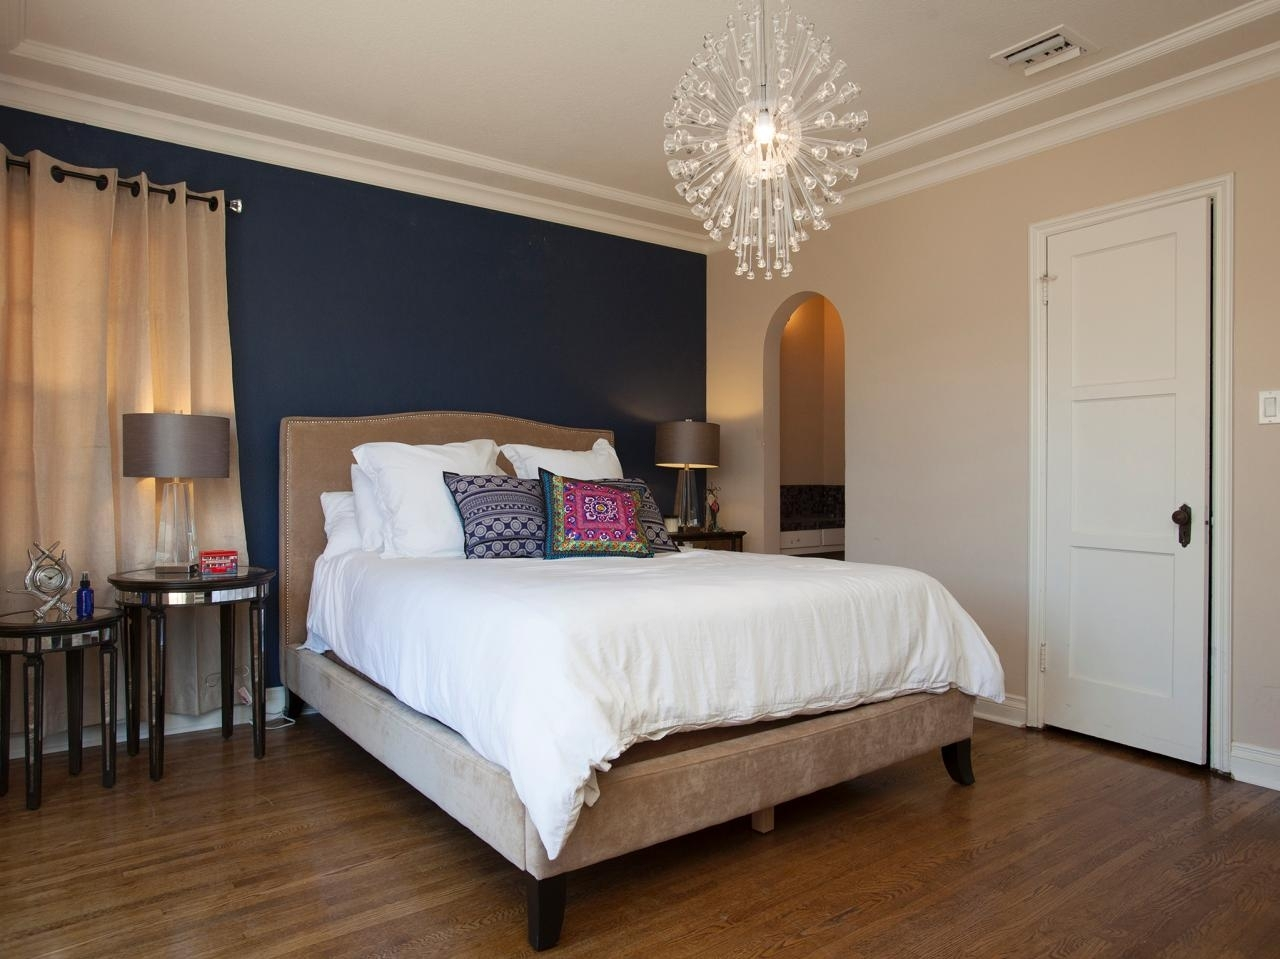 Mesmerizing Bedroom Interior Design With Black Beige Painted Wall In Most Up To Date Wall Accents With Beige (View 2 of 15)